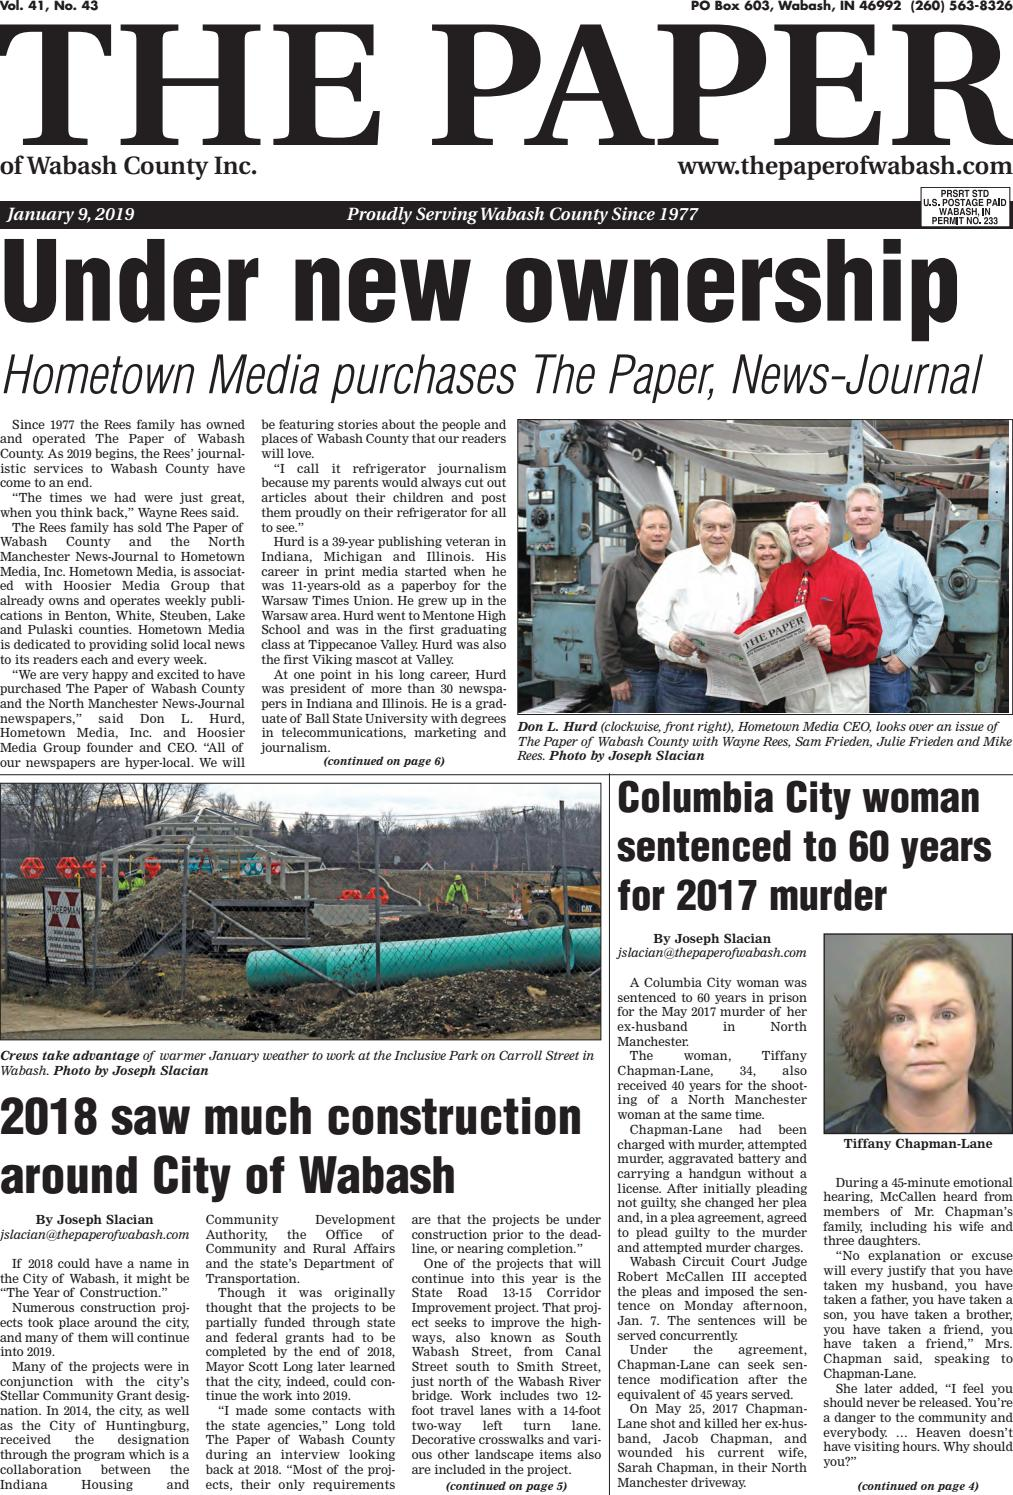 The Paper of Wabash County - Jan  9, 2019 Issue by The Paper